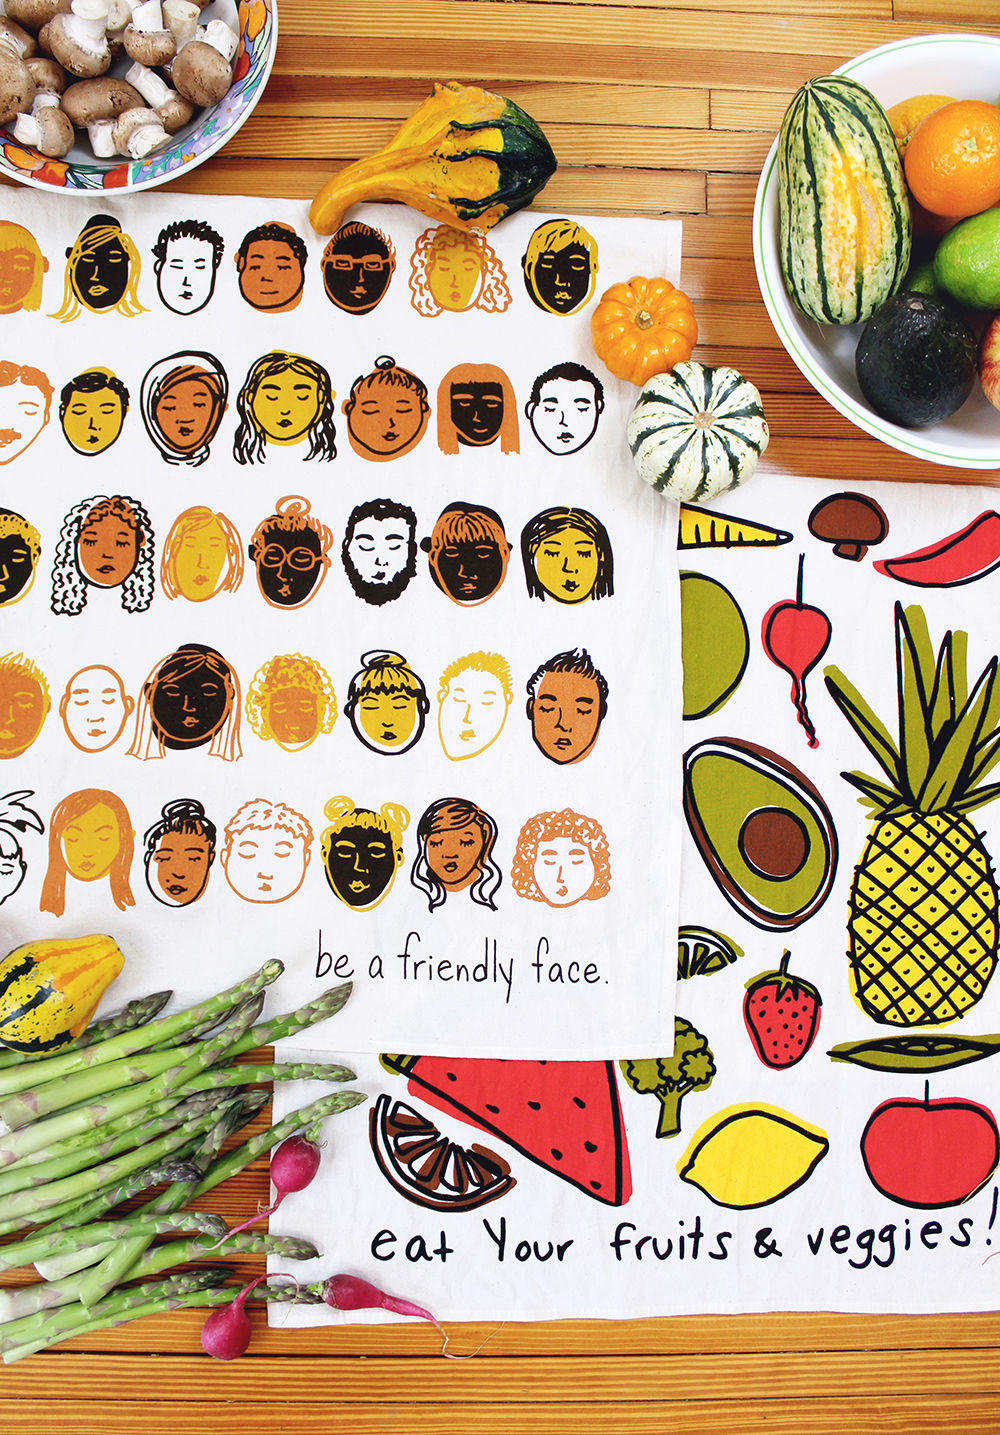 Calhoun & Co. Dish Towels - Friendly Faces and Fruits & Veggies